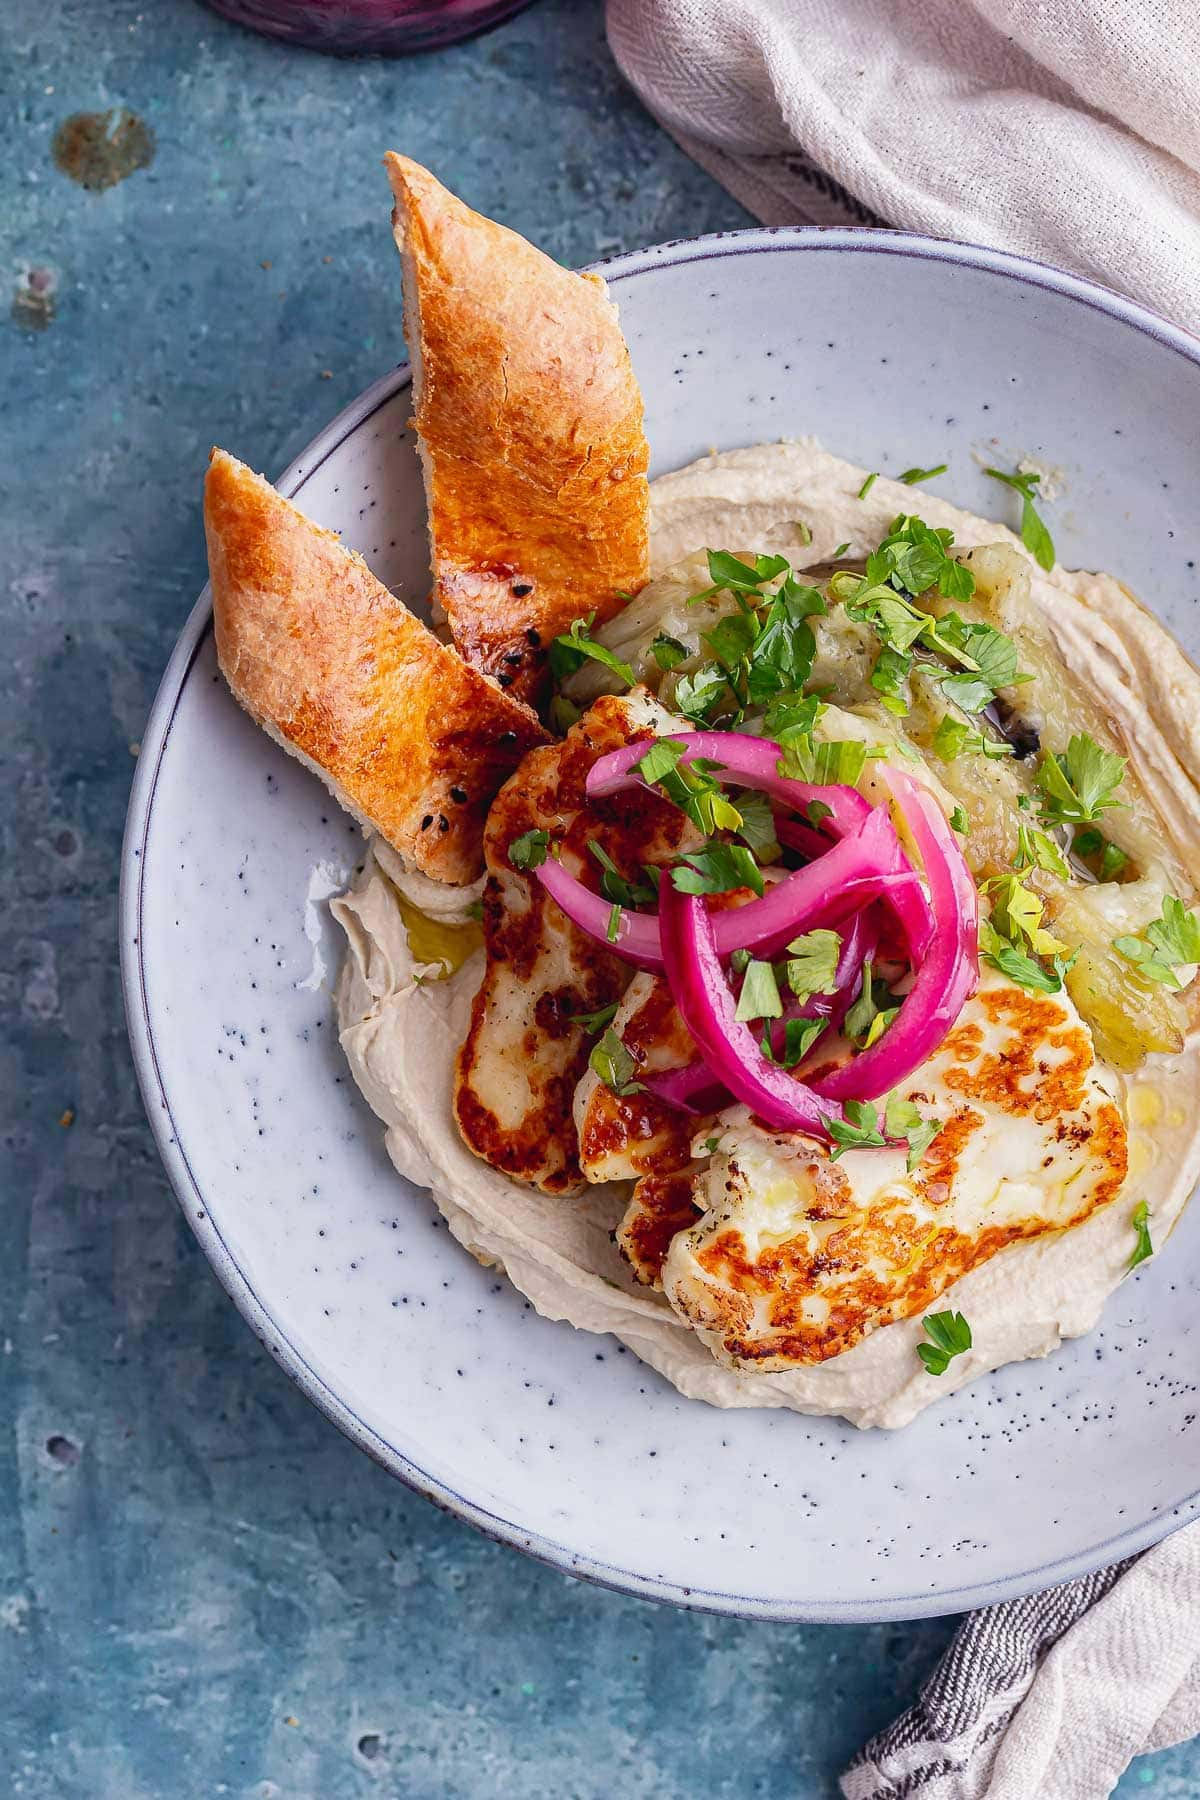 Overhead shot of halloumi aubergine hummus bowl with bread in a blue bowl